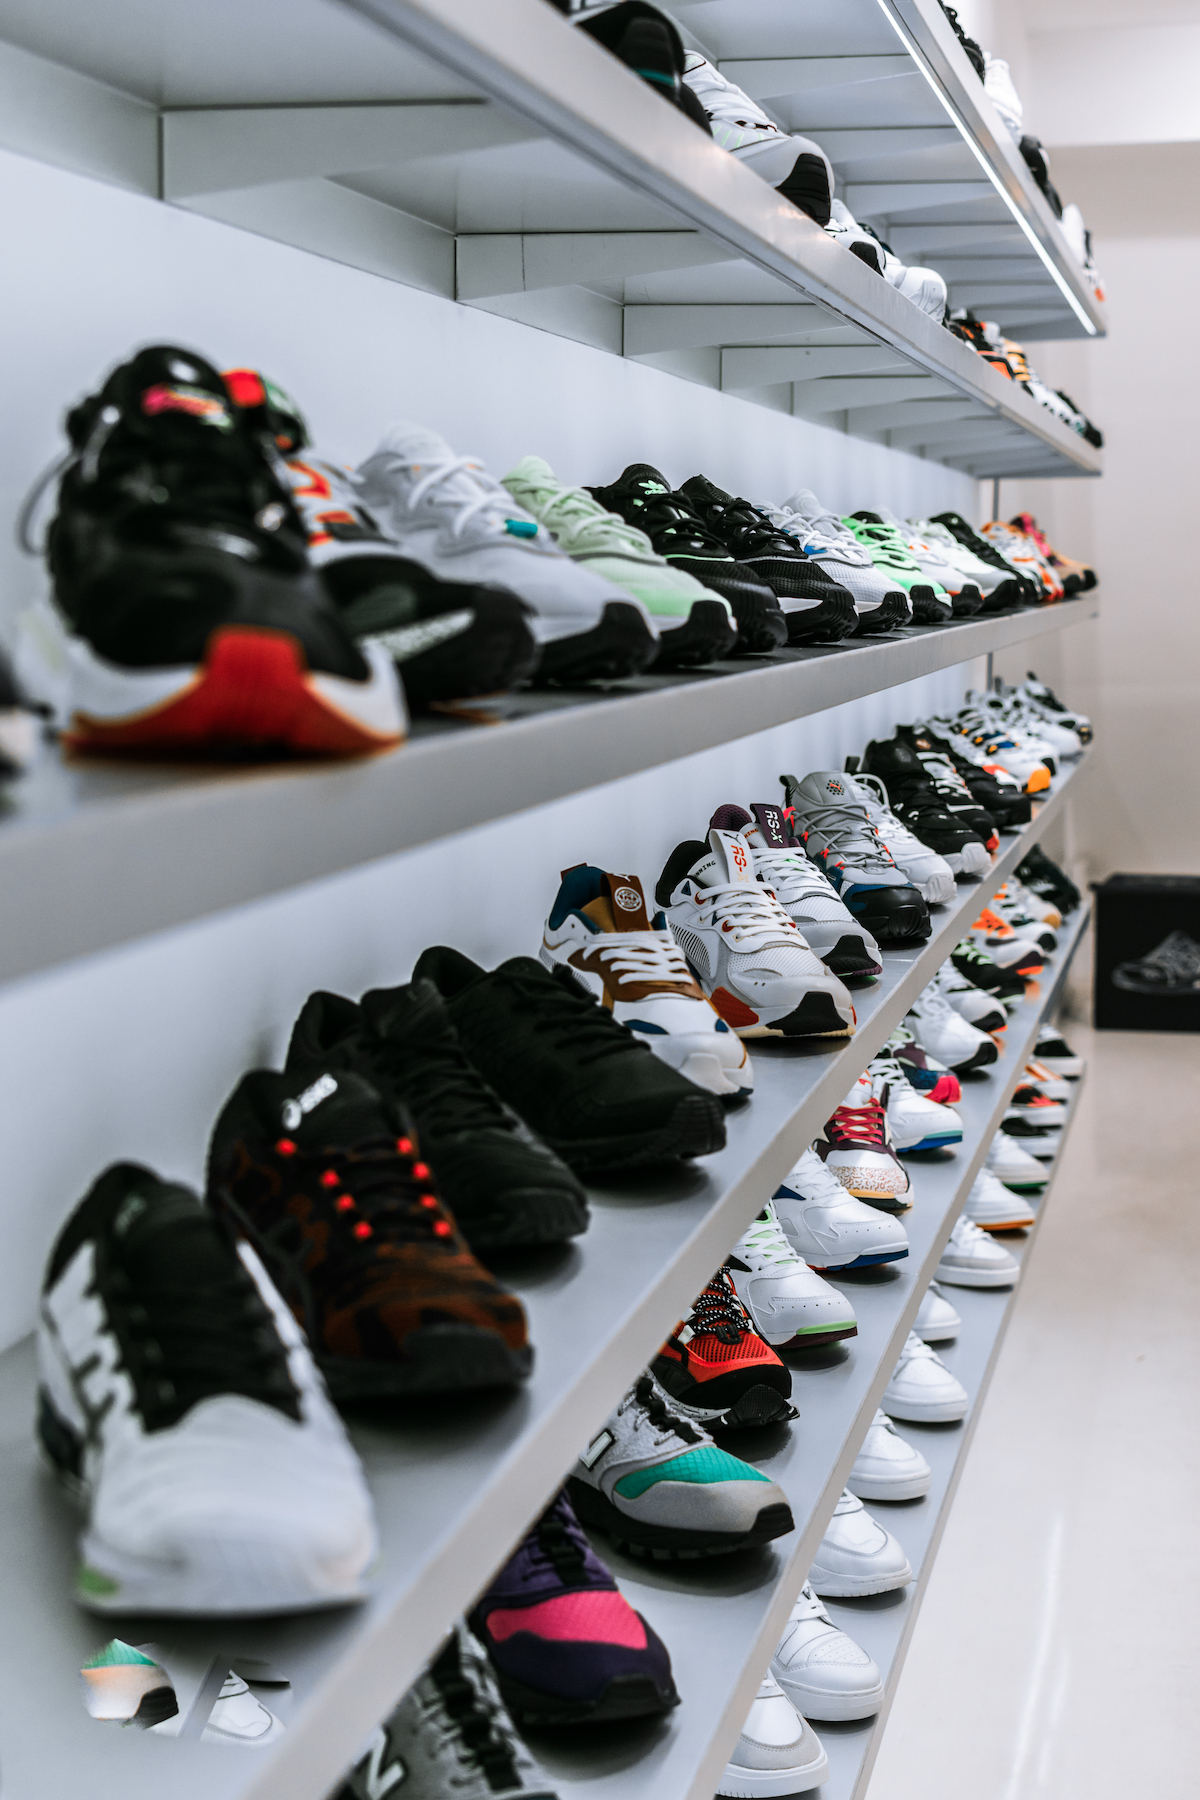 shoes on the rack